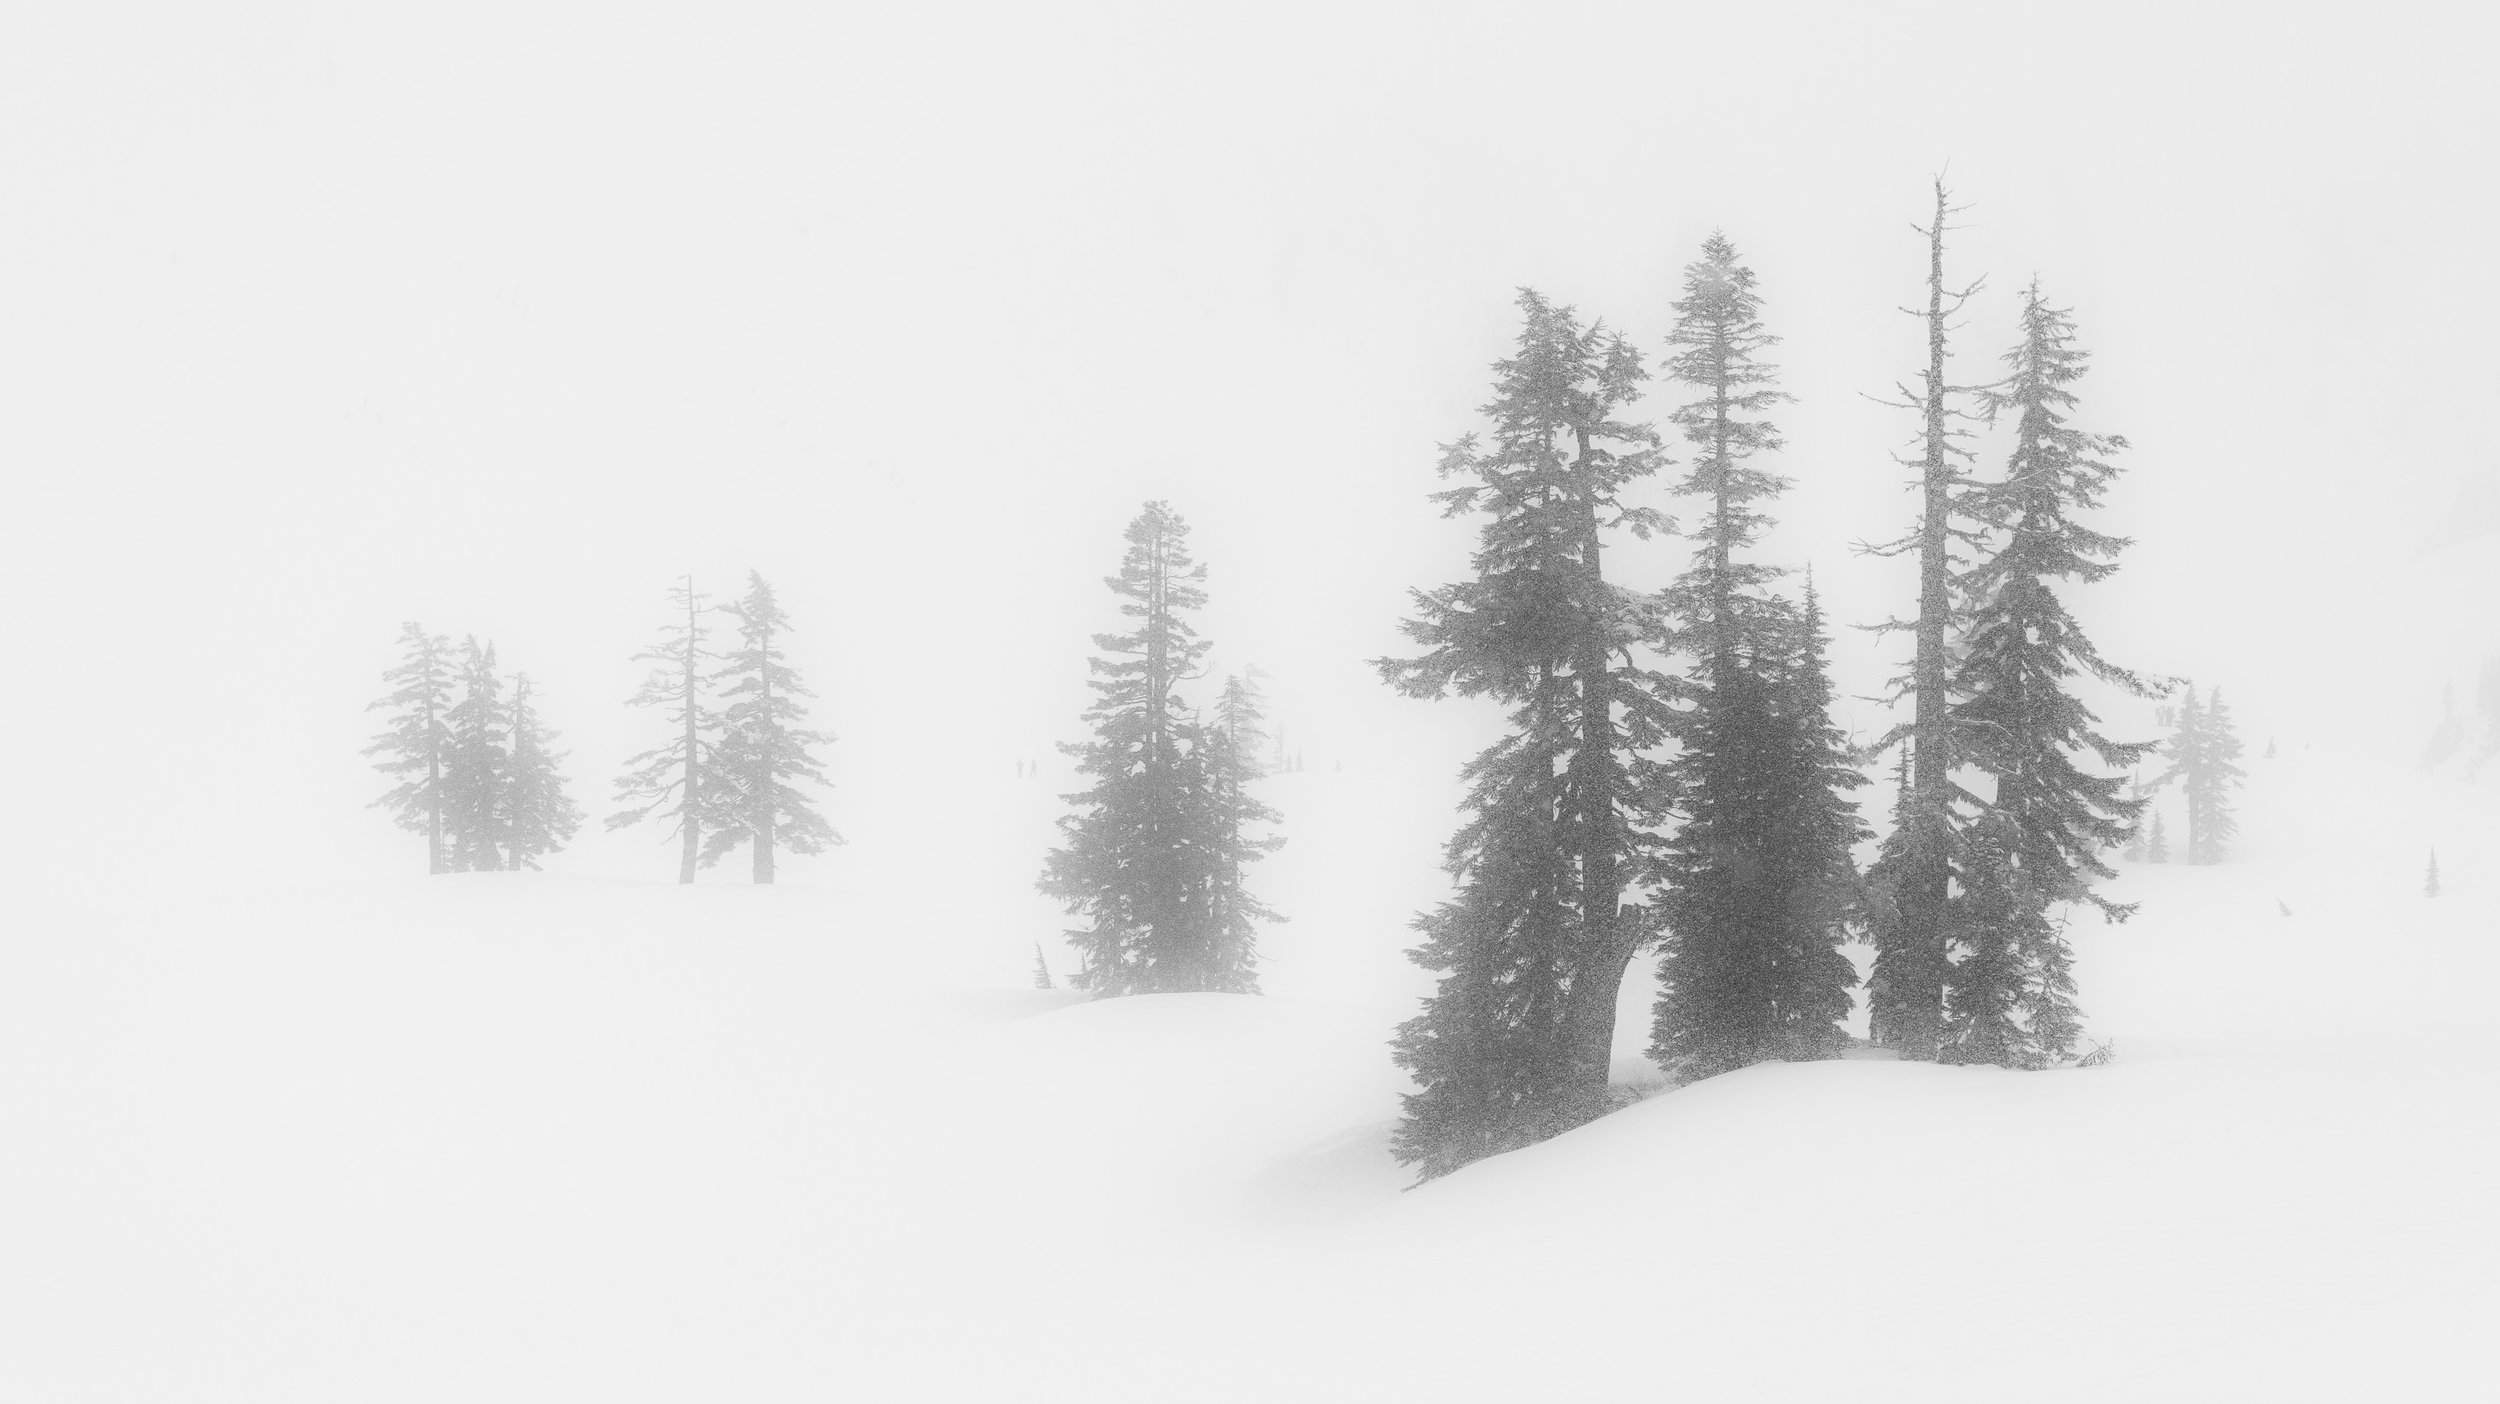 Whiteout conditions at the Mount Baker Ski Area reduce visibility to just a few dozen meters